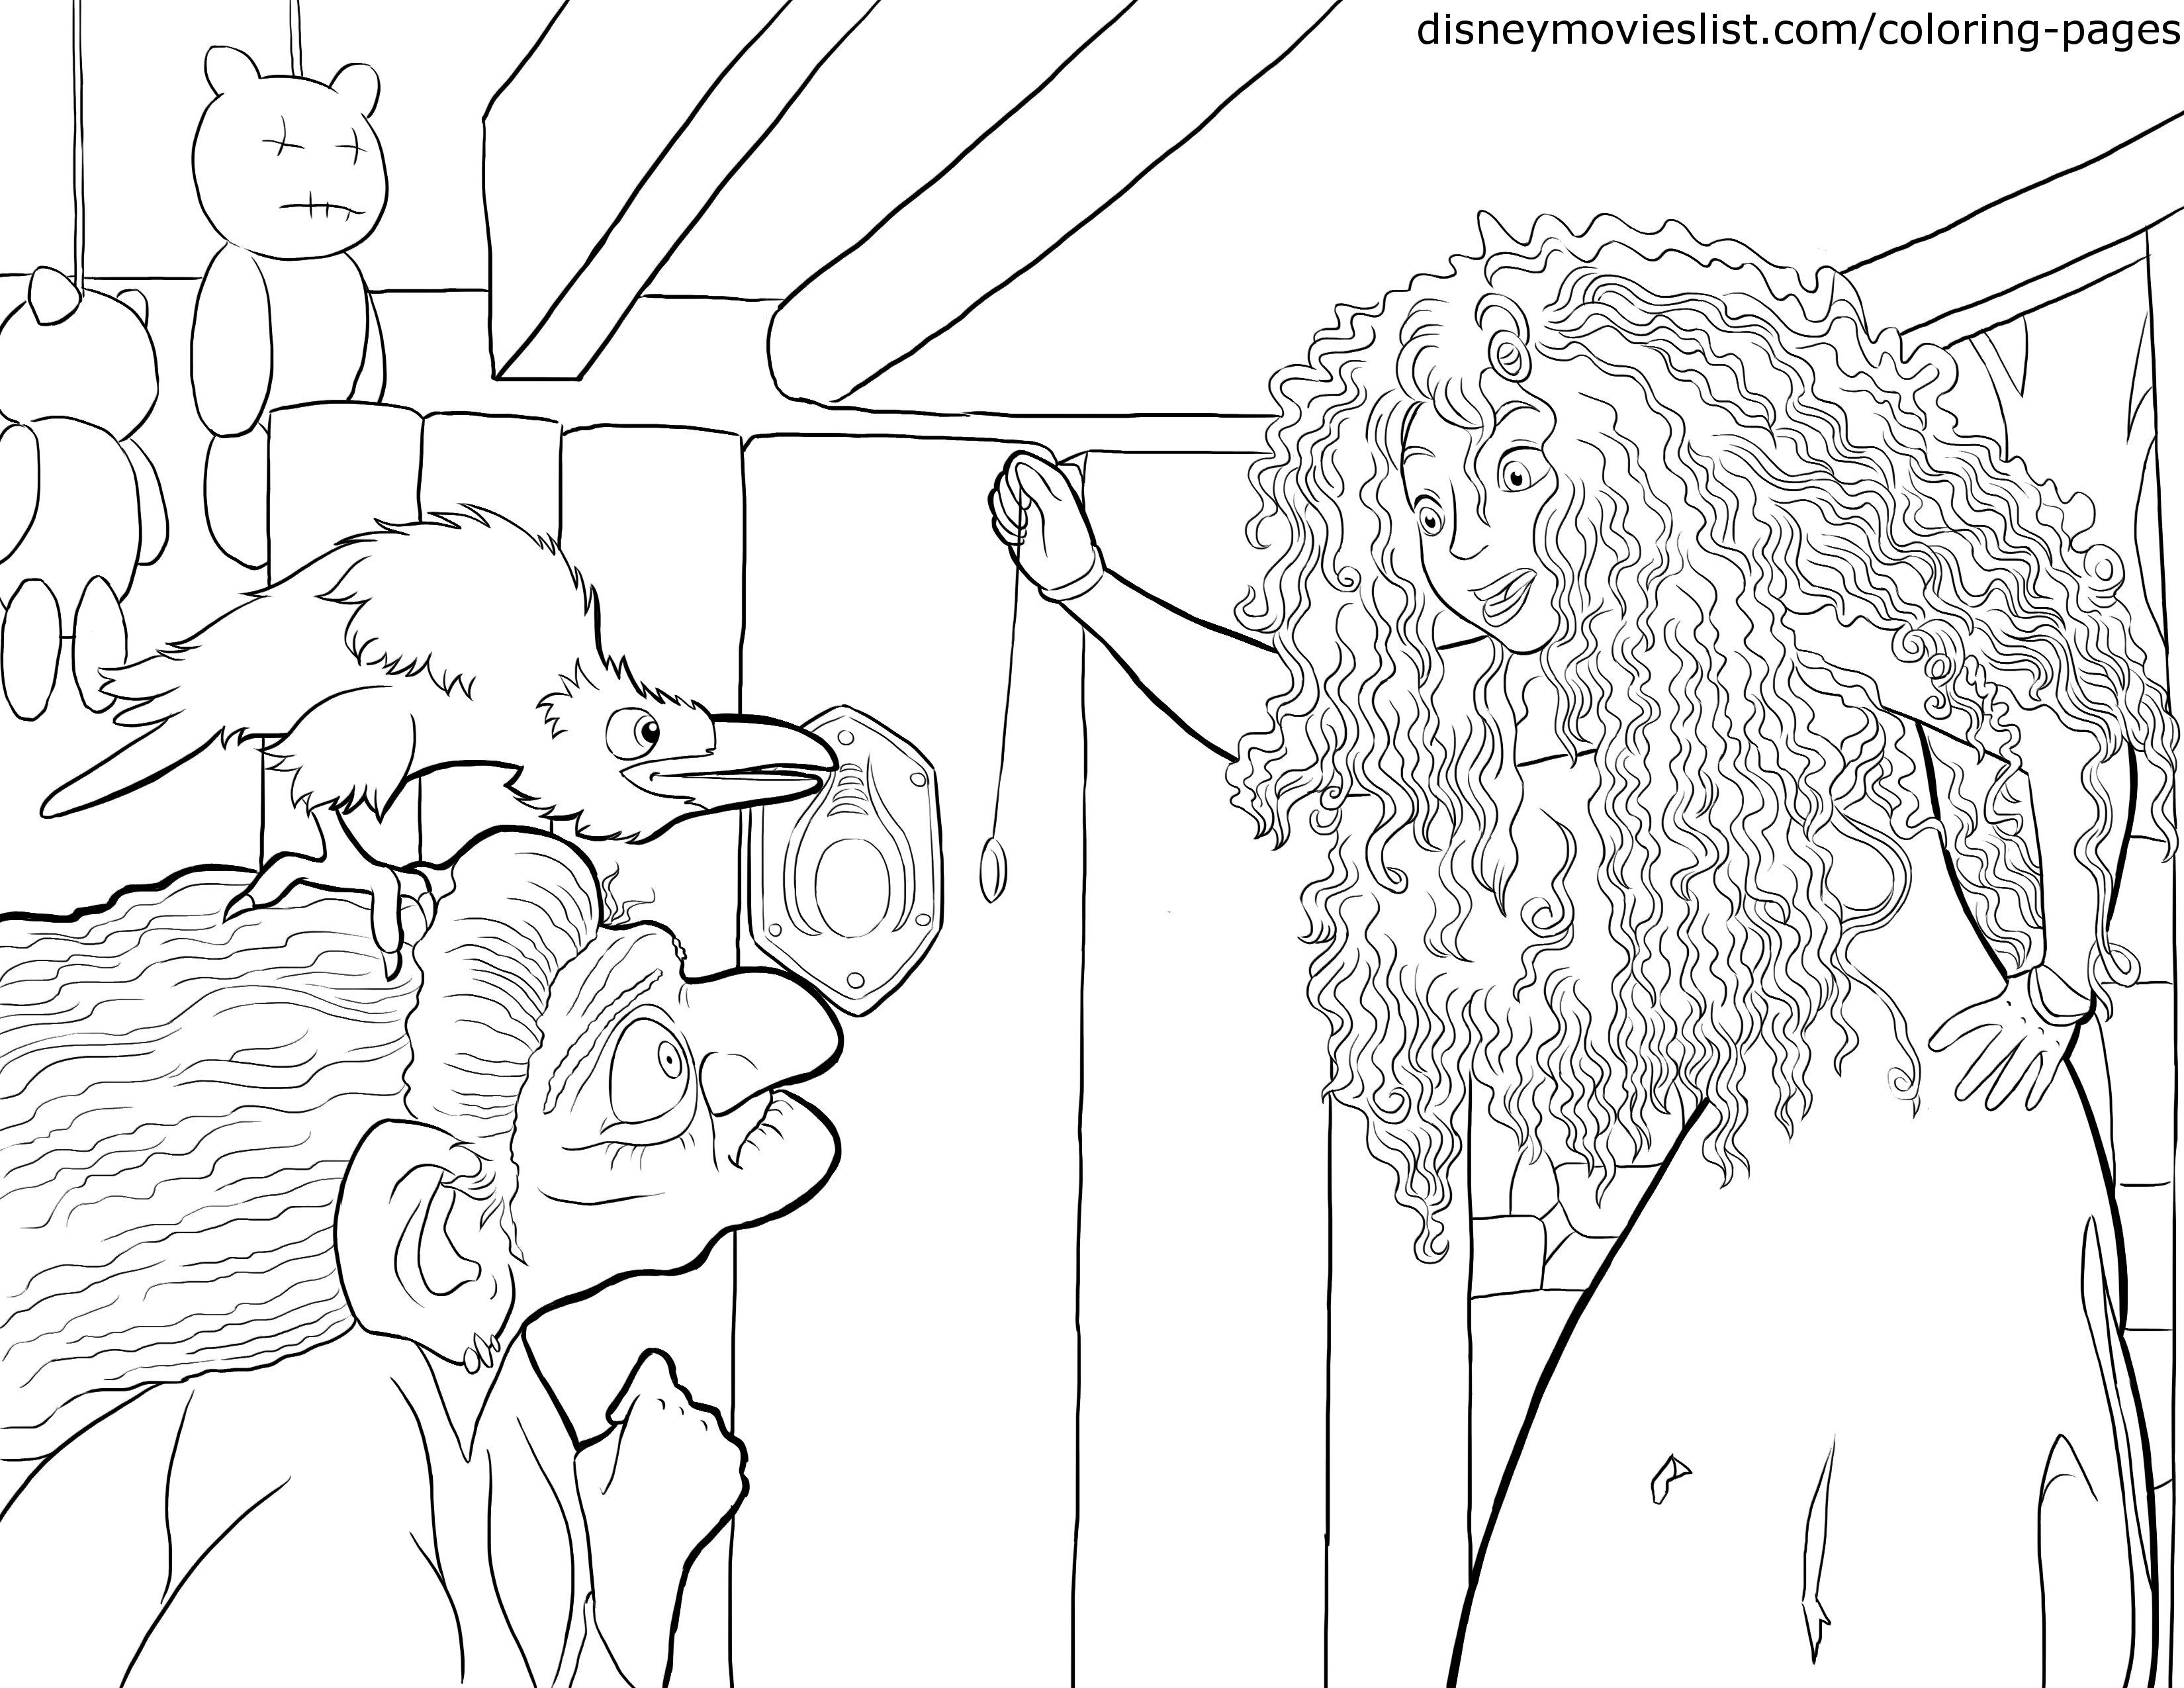 Disney's Brave Coloring Pages Sheet, Free Disney Printable